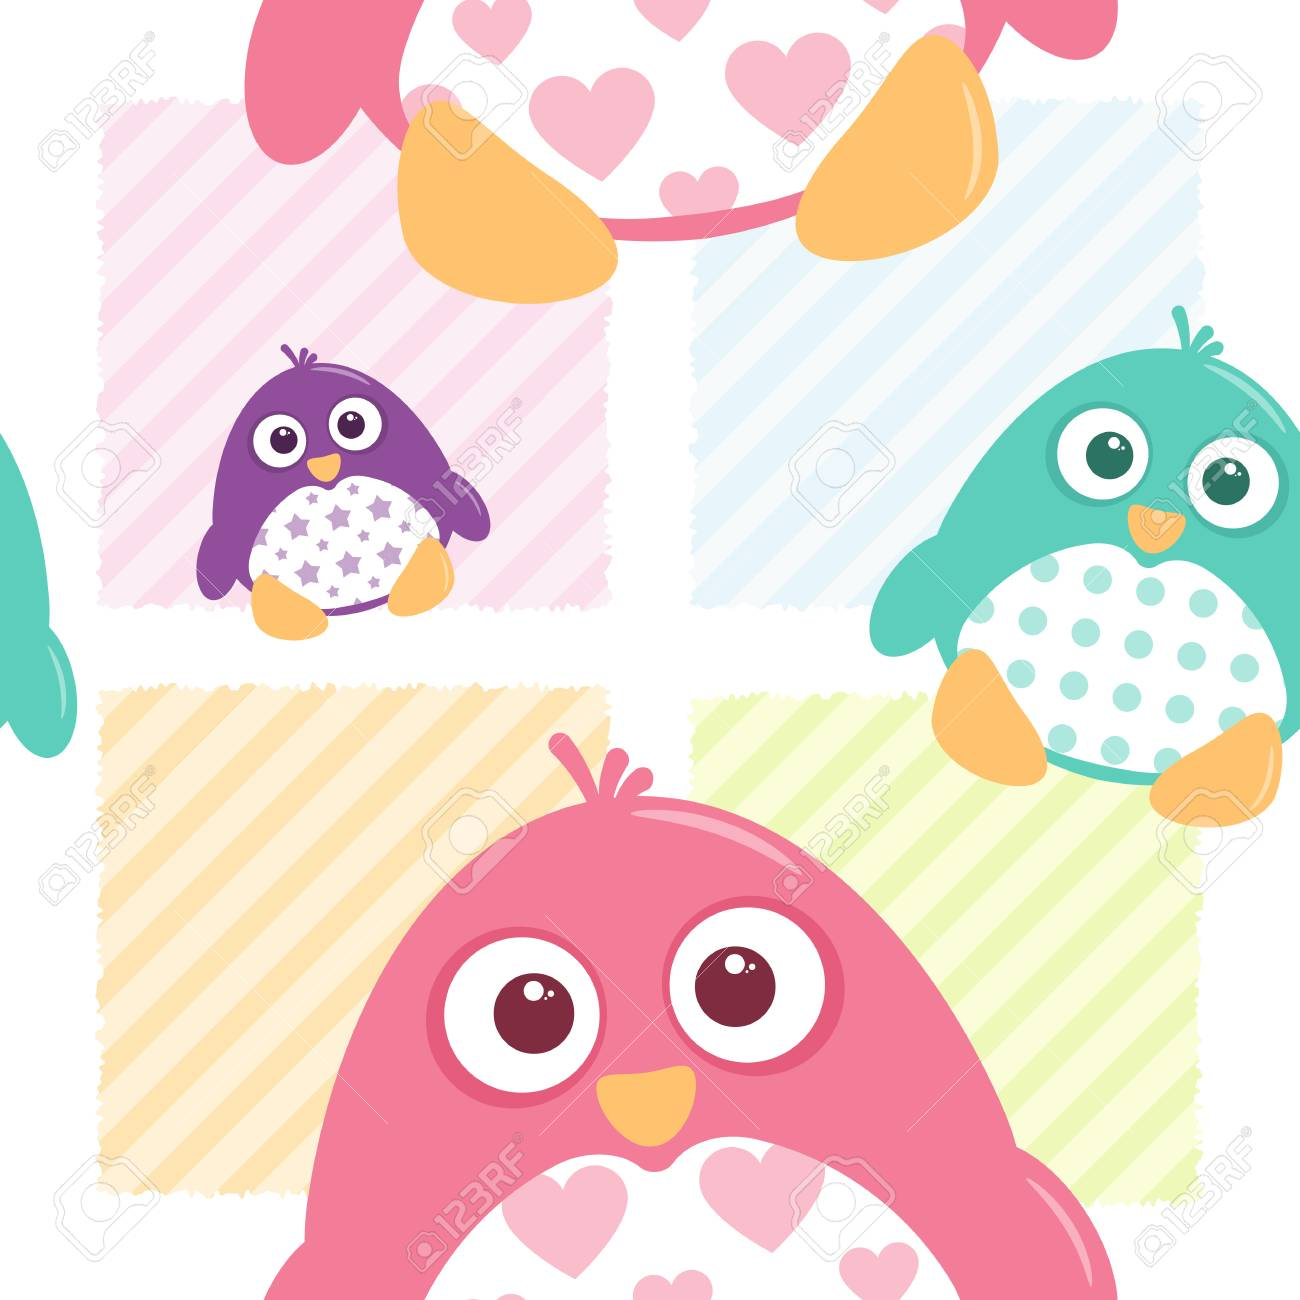 A seamless tile of fat, cartoon, vector penguins  These cute